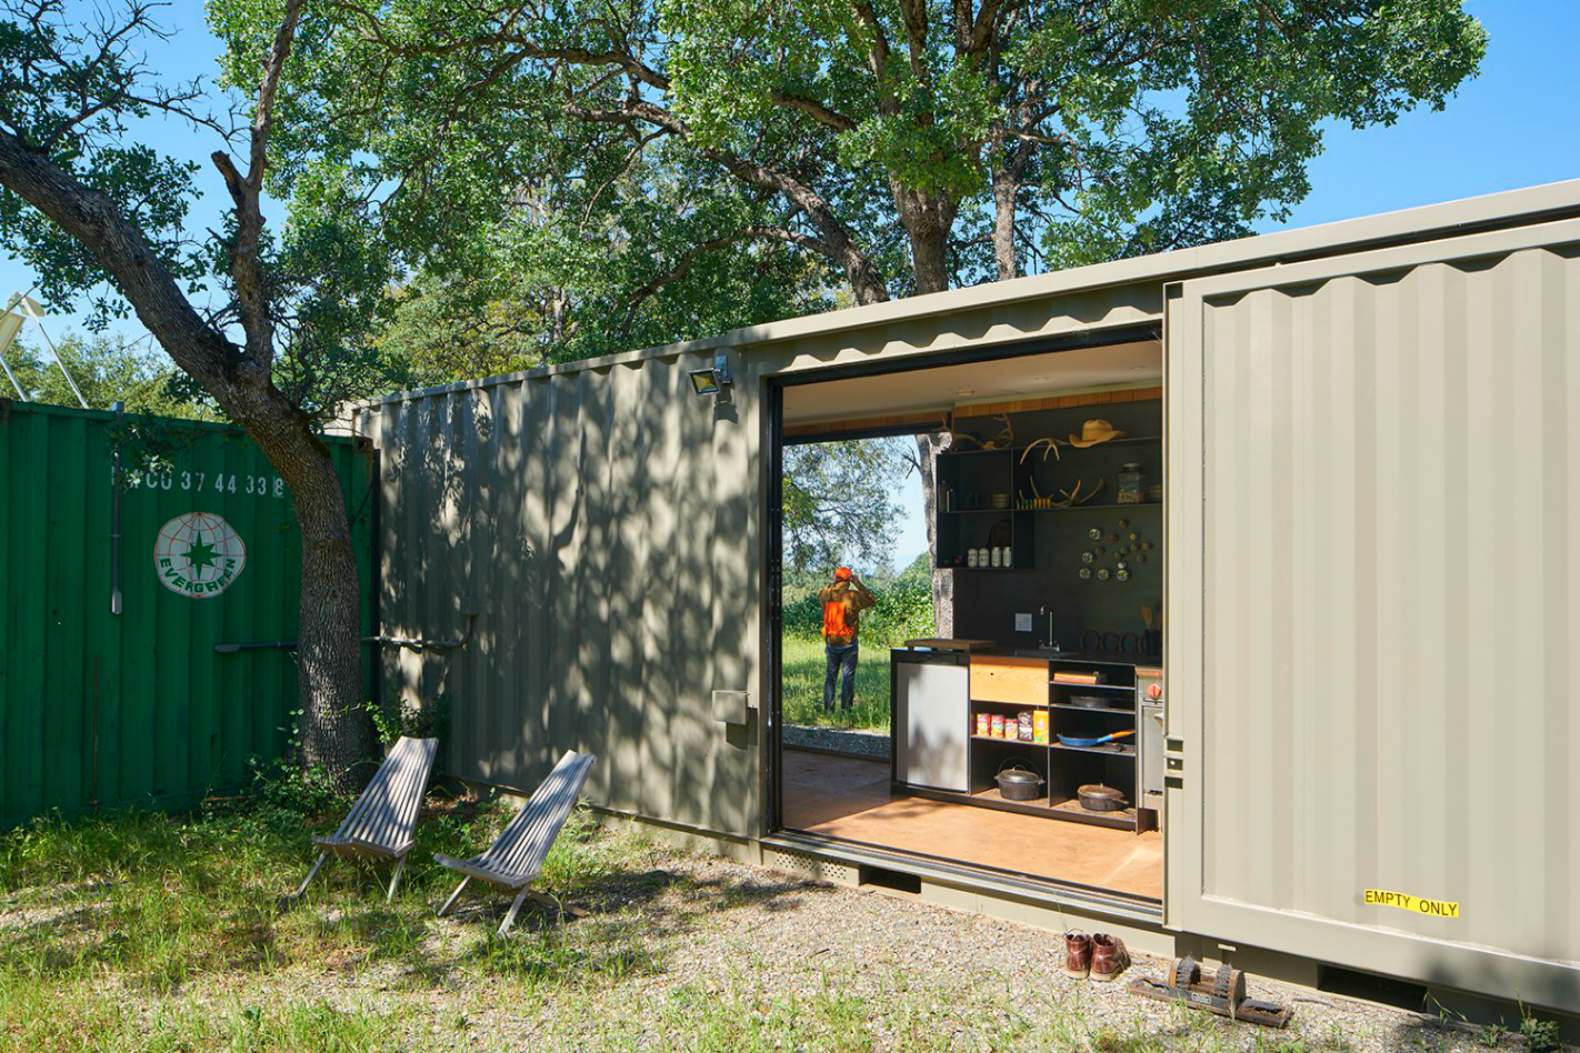 Off-grid shipping container cabin has a warm wooden interior